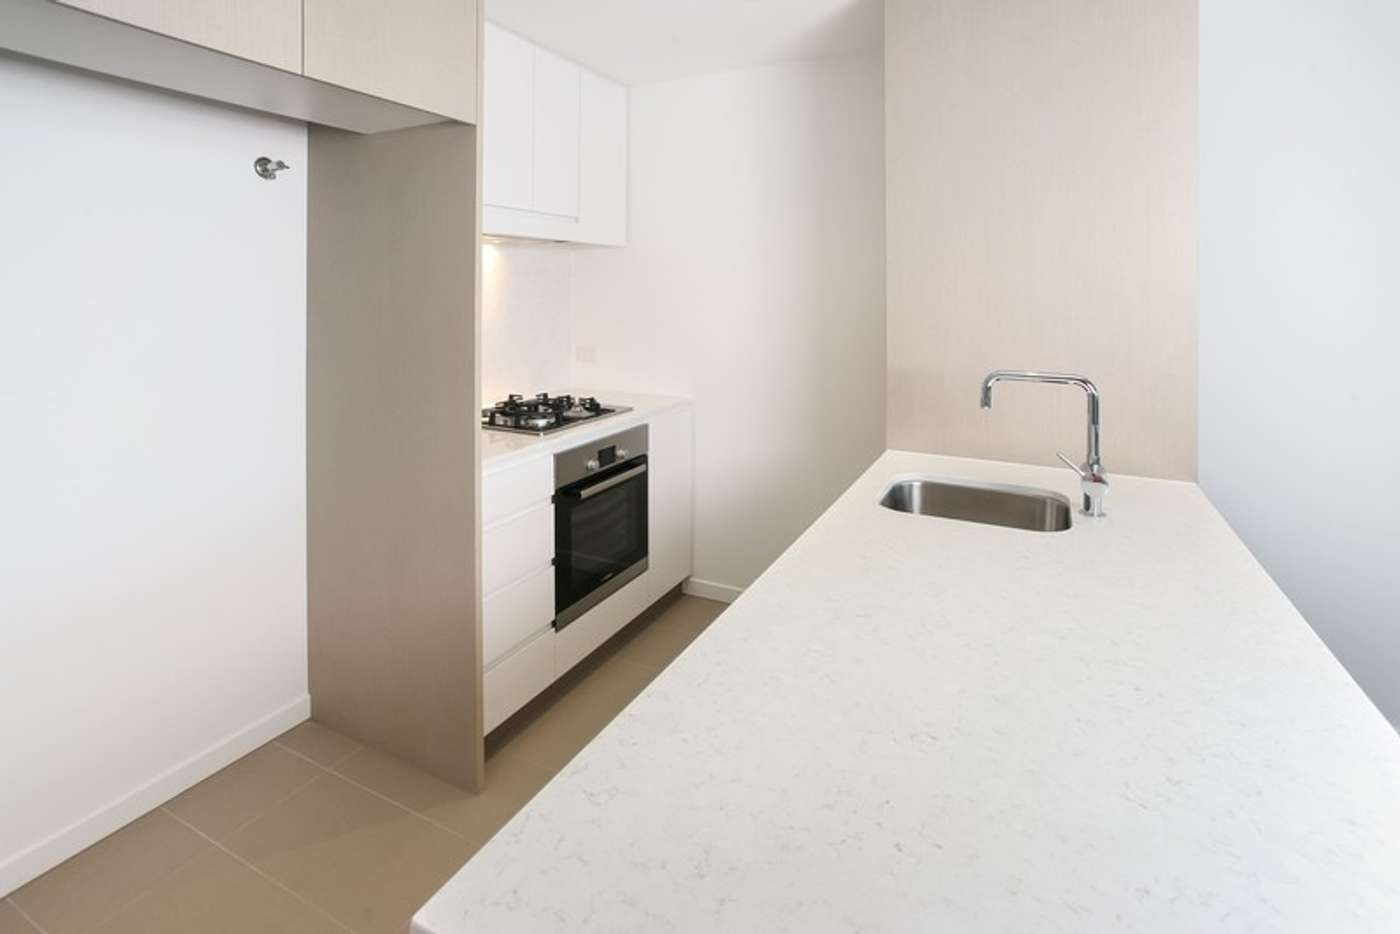 Sixth view of Homely apartment listing, 0607/320 Macarthur Avenue, Hamilton QLD 4007